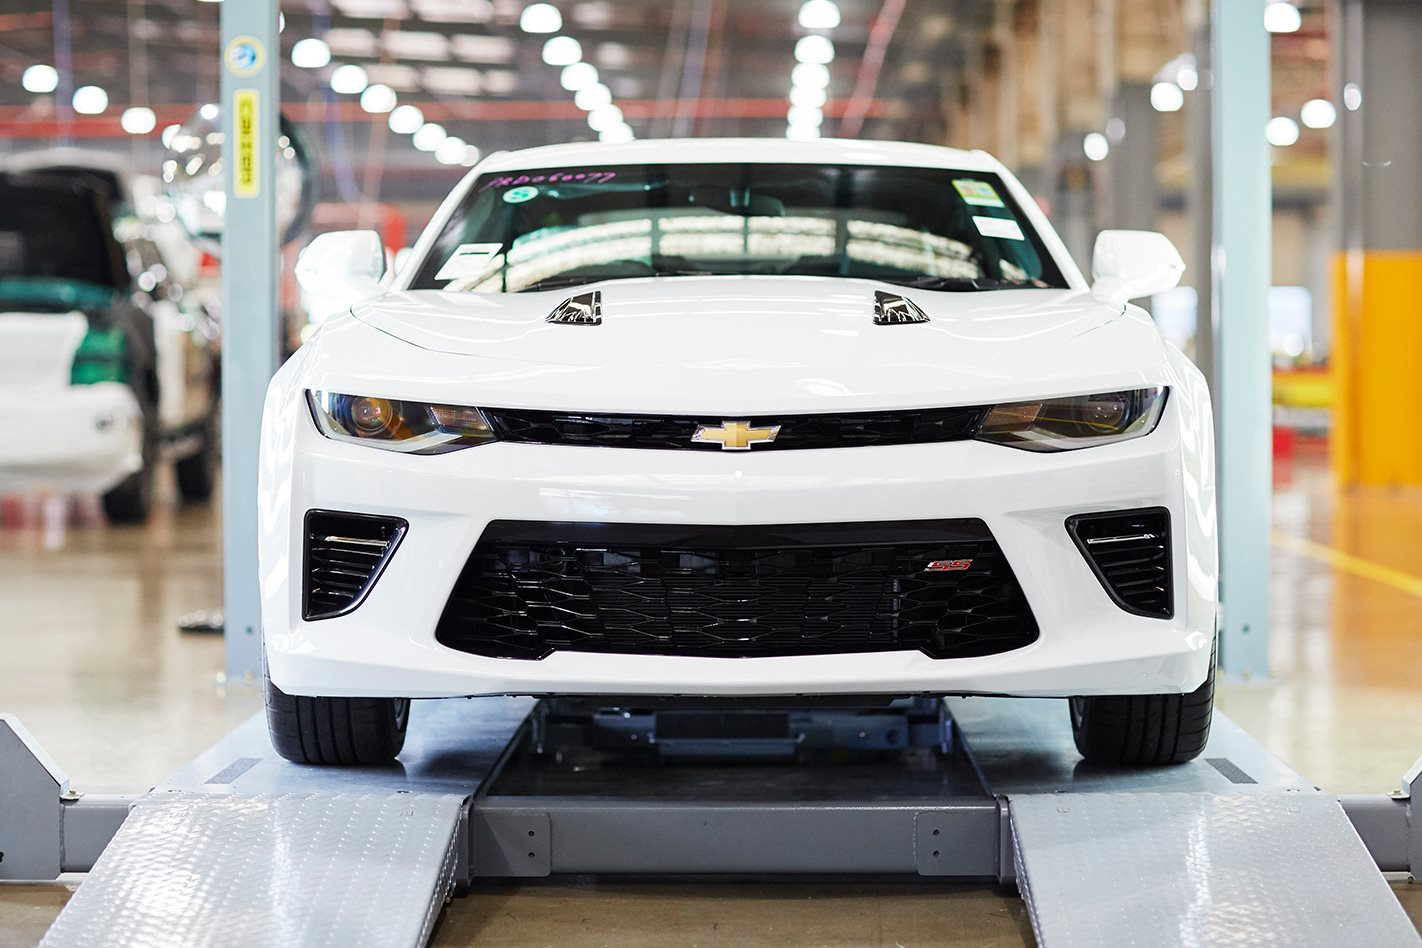 2018 Chevrolet Camaro Review Engine Wiring Diagram On Abit Sleek Styling And Transmission Calibration Minus Lack Of Space No Hud Looks Expensive Versus Mustang Gt Manual Option Yet Lacks